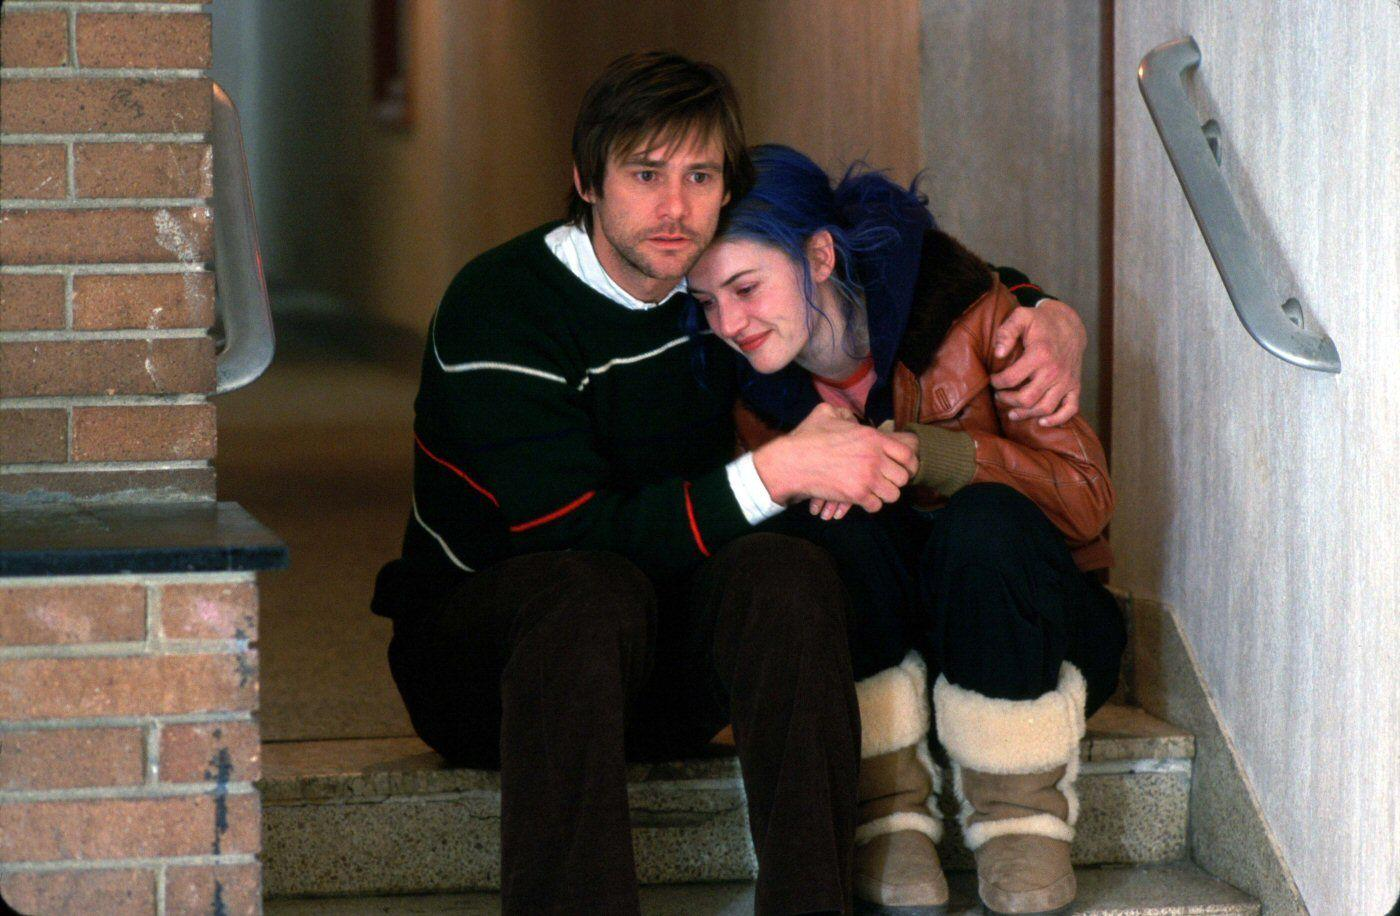 Eternal Sunshine Of The Spotless Mind photo 6 of 18 pics ...